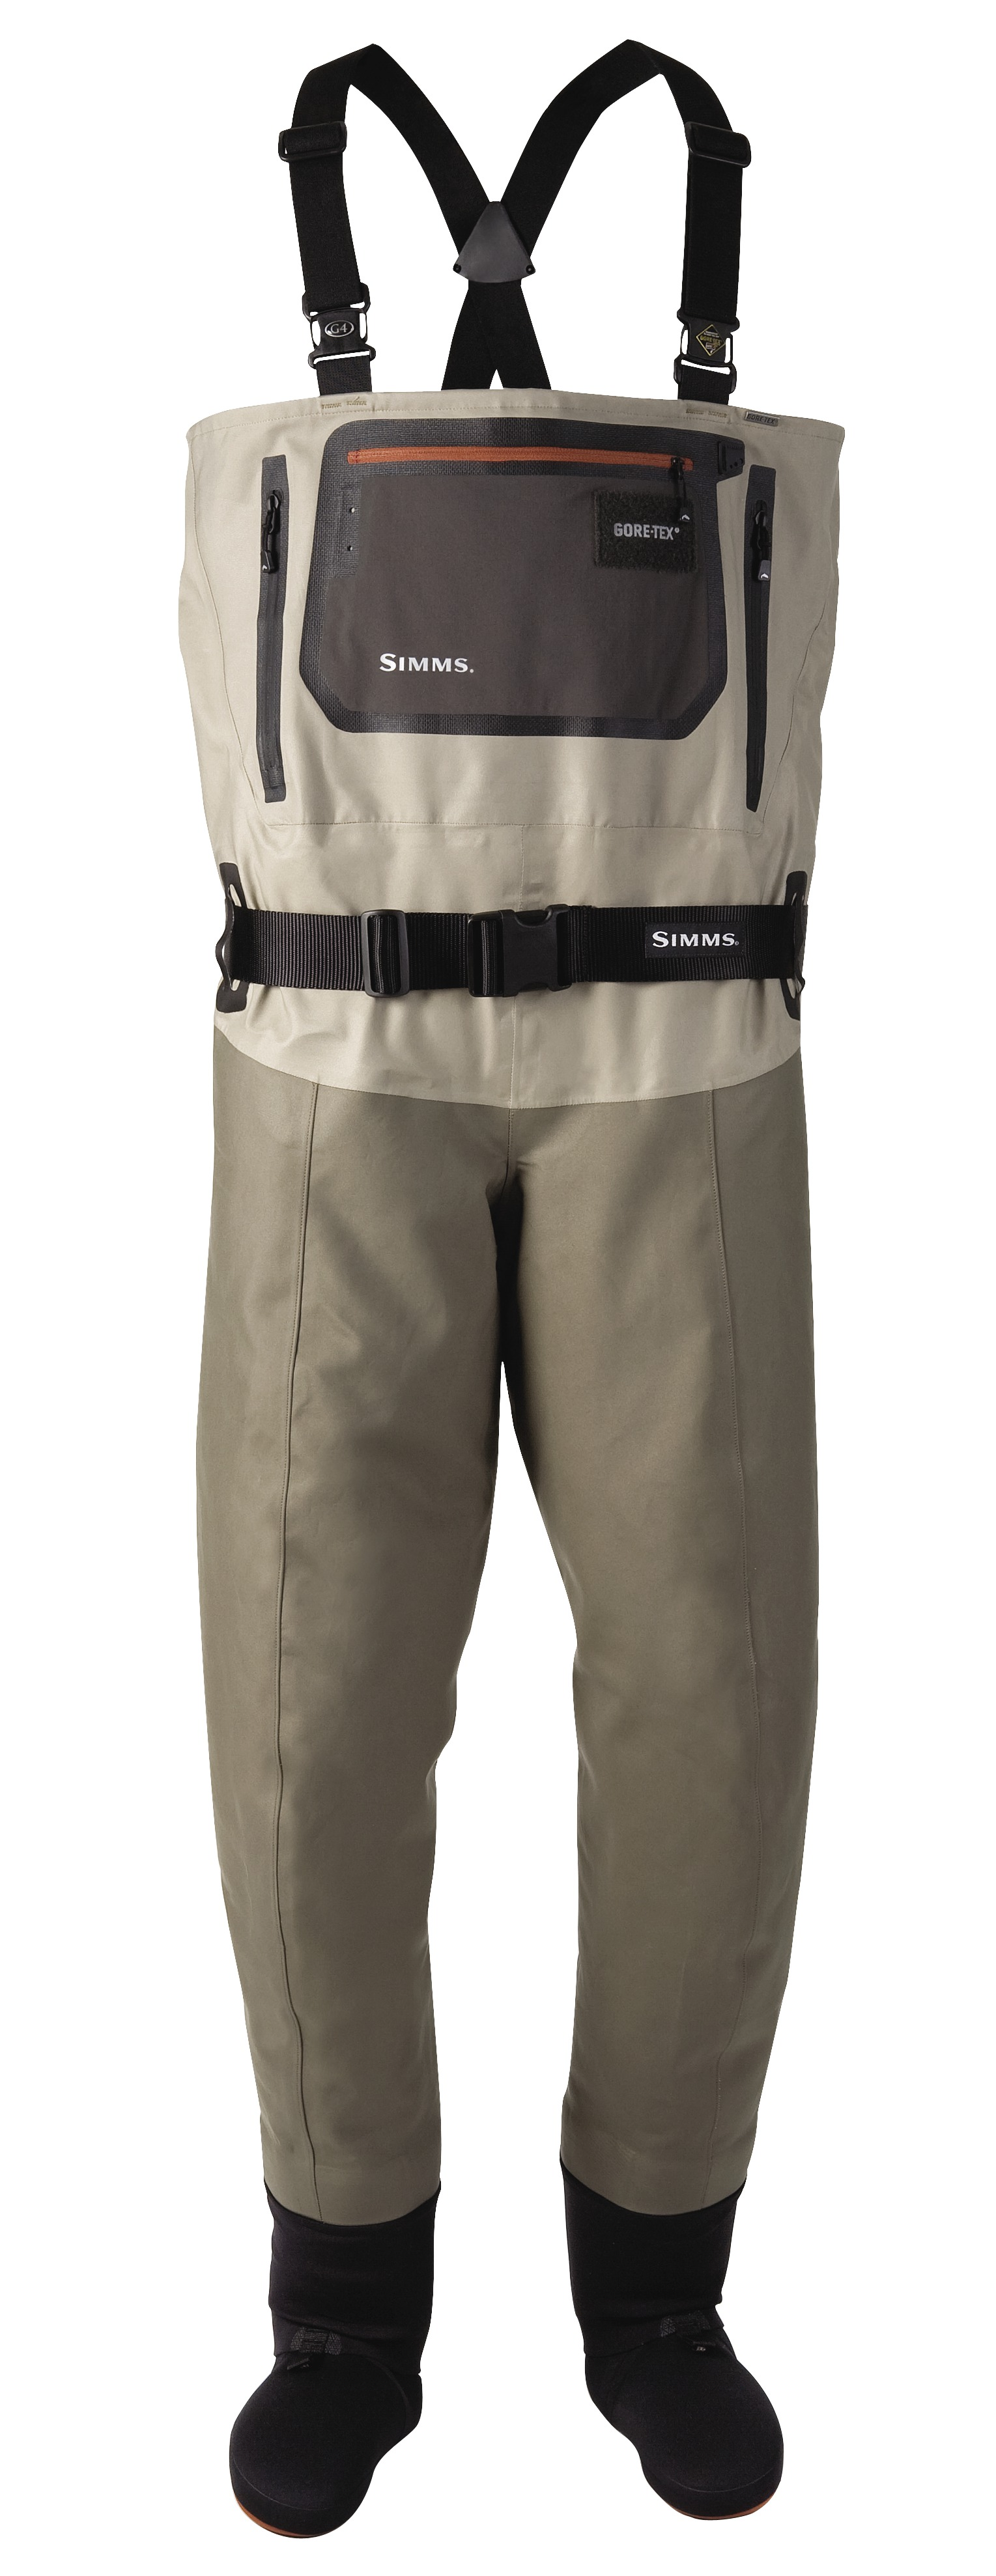 Simms g4 pro chest waders glasgow angling centre for Simms fishing waders